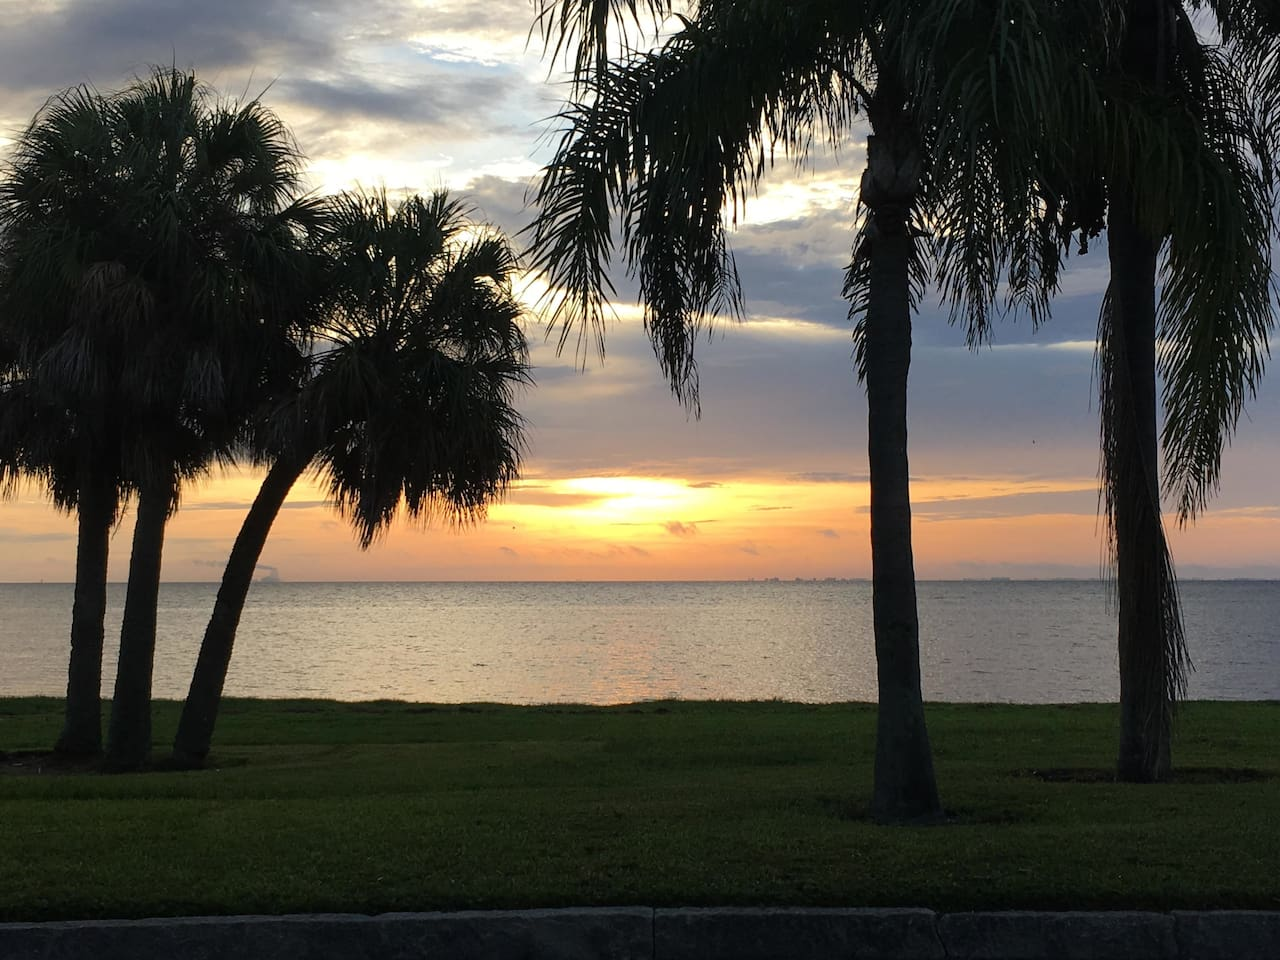 Sunrise View of Tampa Bay